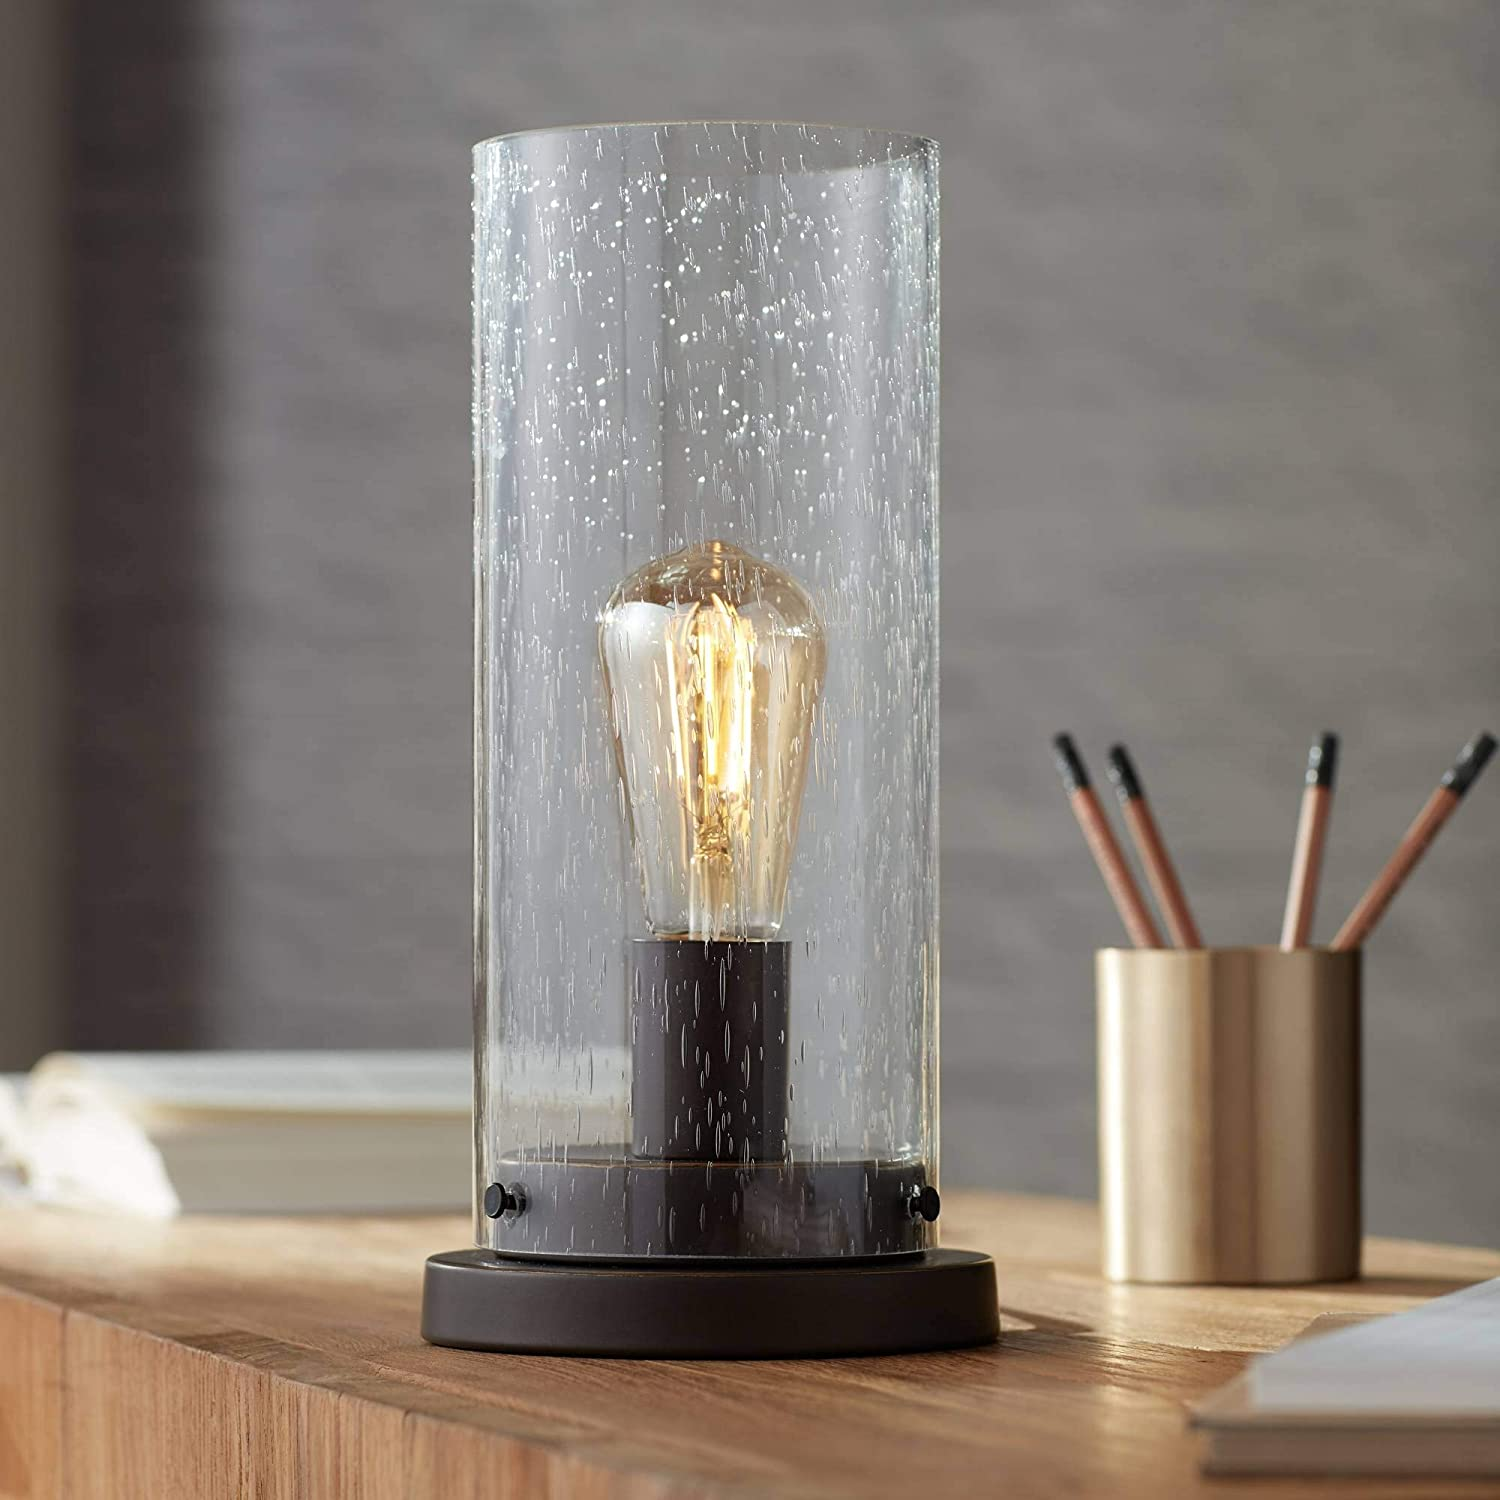 Libby rustic accent table lamp 12 high bronze metal round seedy glass cylinder shade led edison bulb for bedroom office 360 lighting